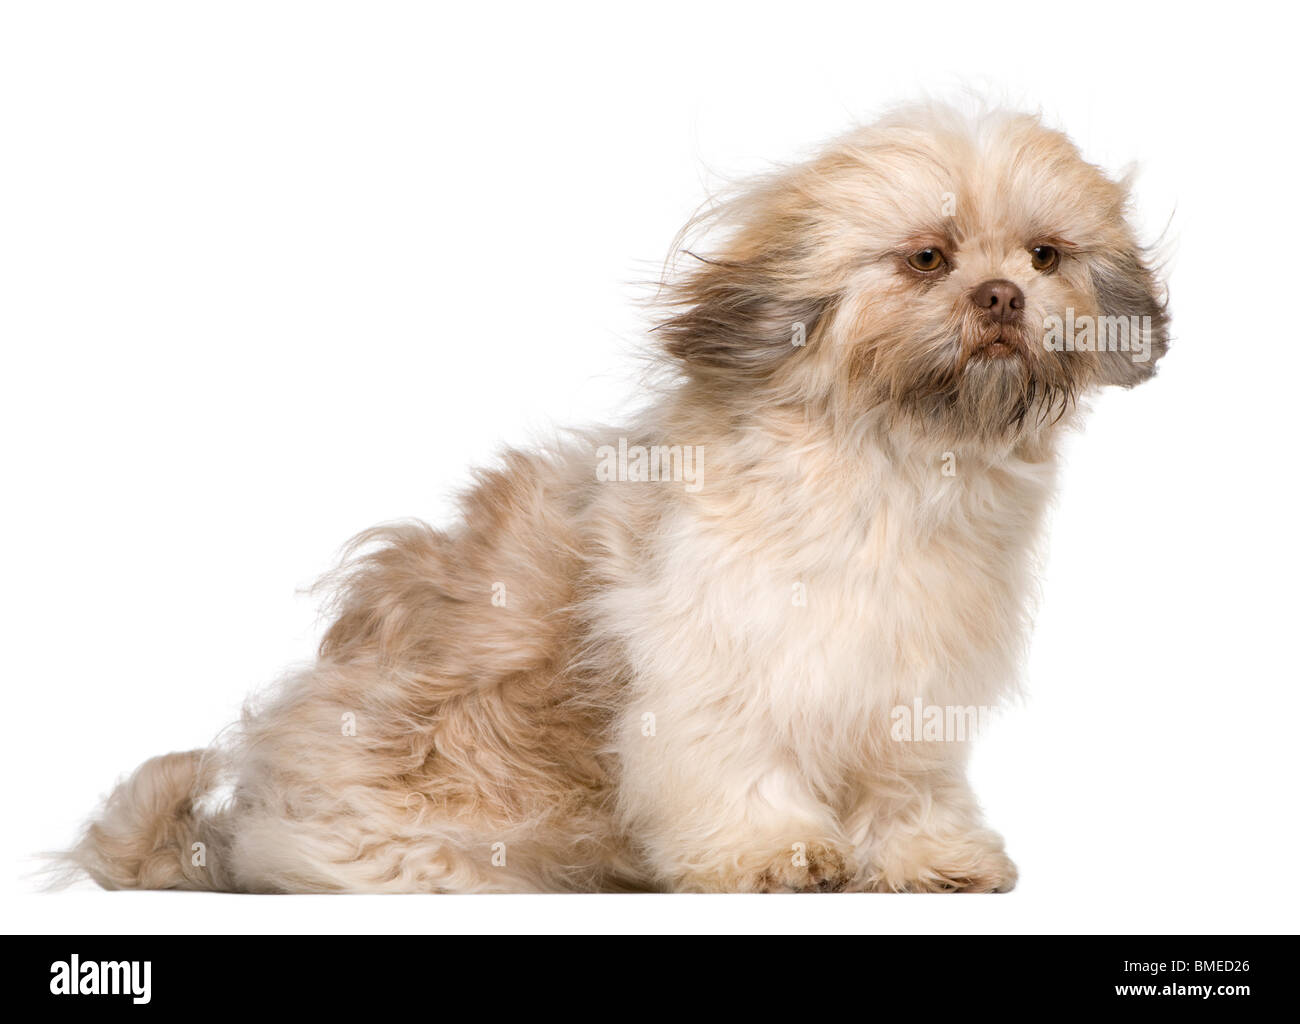 Shih Tzu 1 Year Old Sitting In Front Of White Background Stock